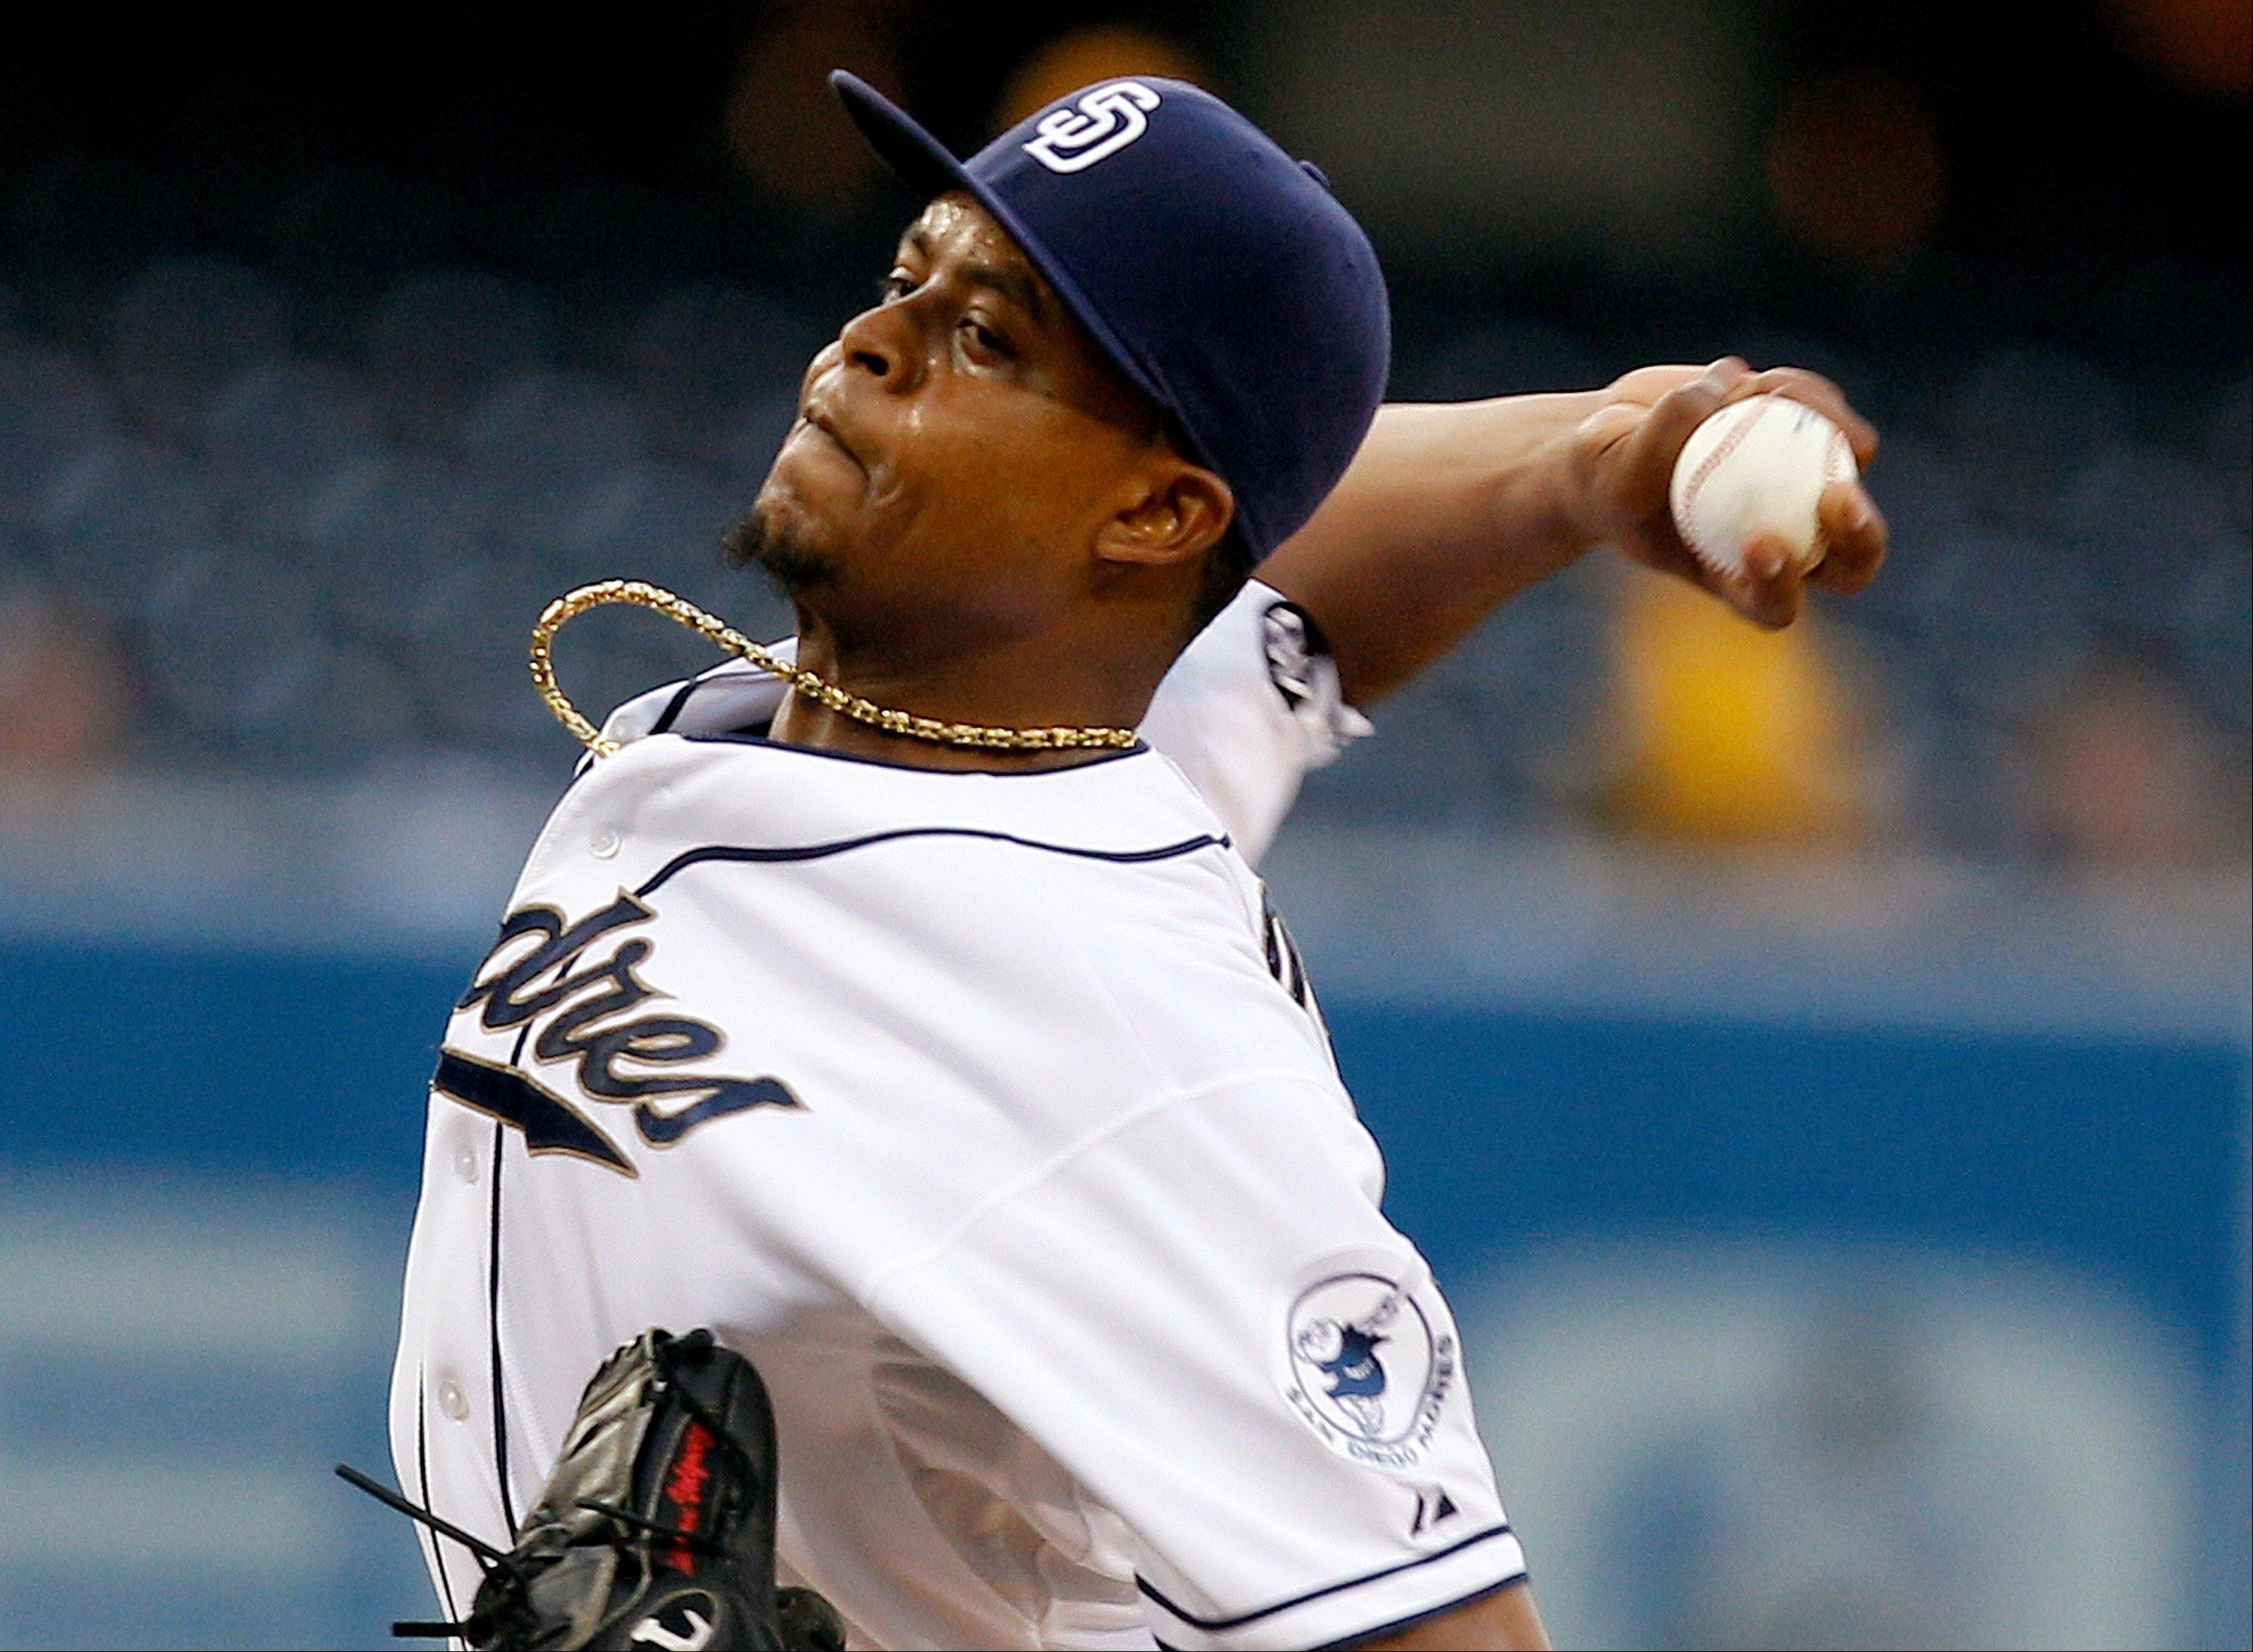 San Diego starter Edinson Volquez allowed one run and five hits Monday night at home against Pittsburgh.